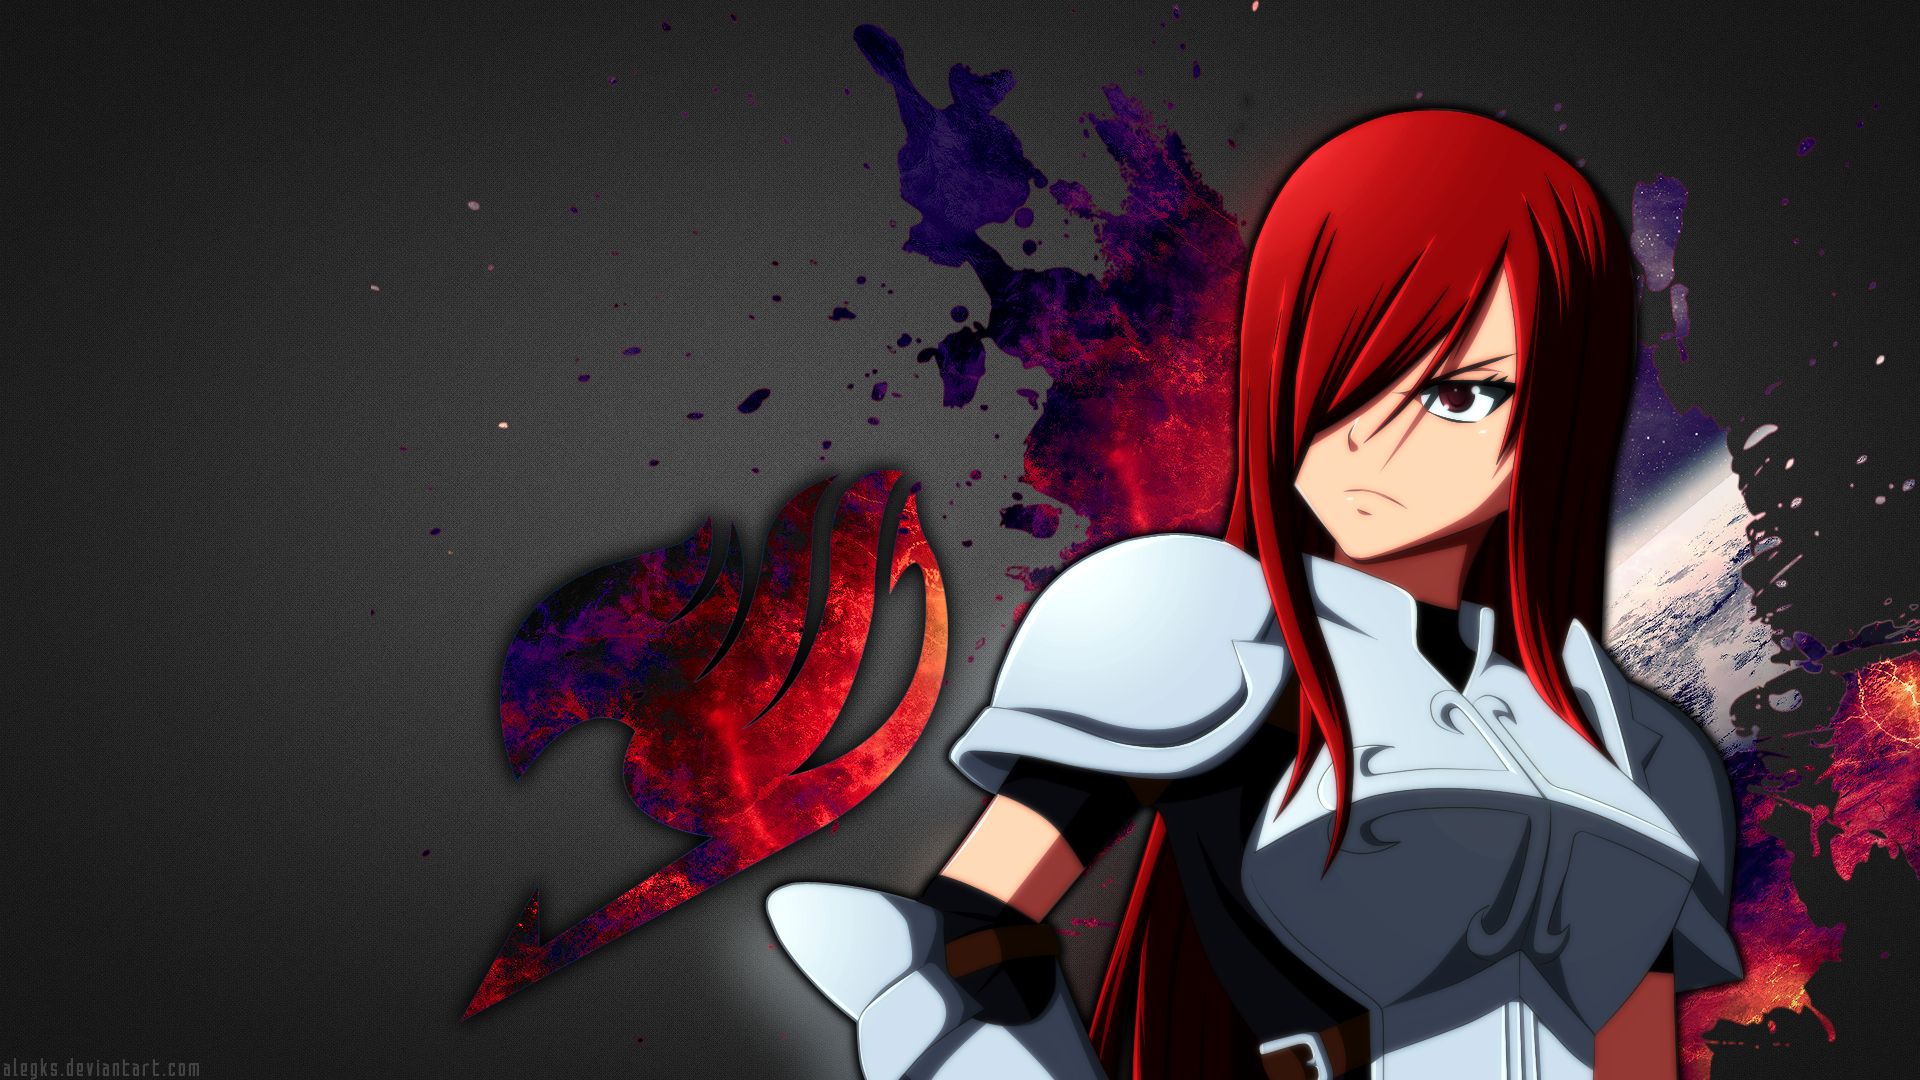 Erza Scarlet [Fairy Tail Wallpaper]